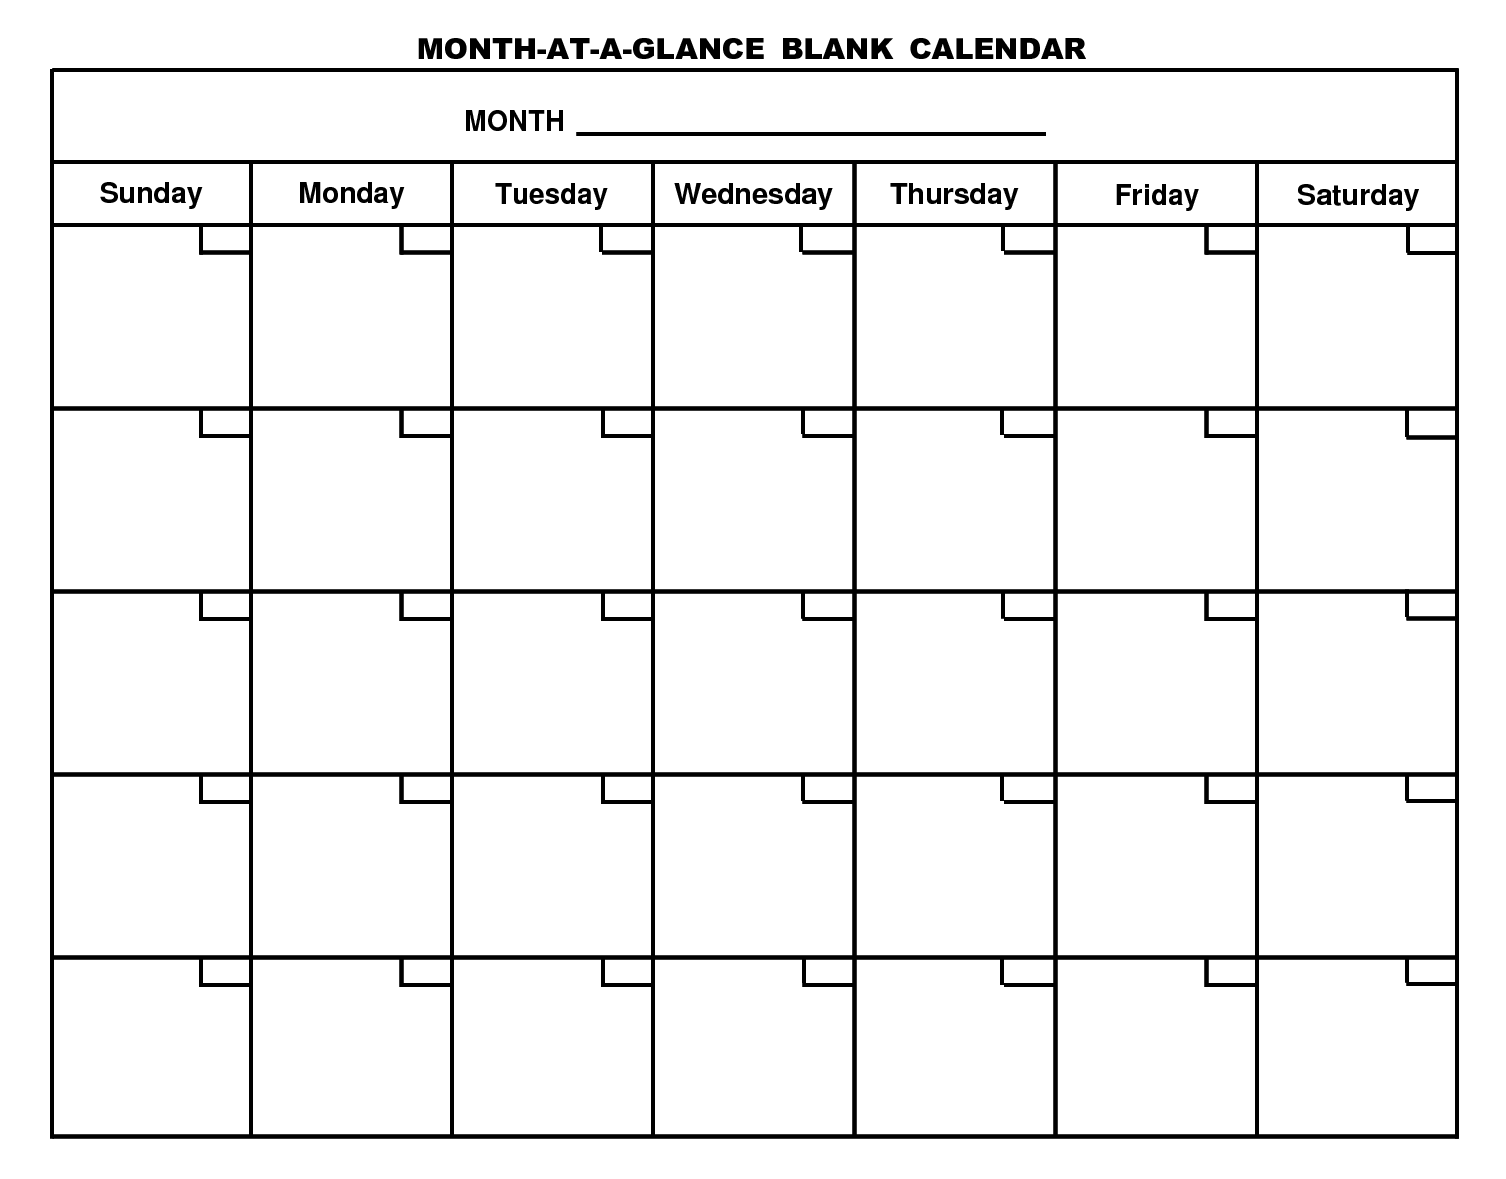 Blank month calendar clipart image library stock blank printable monthly calendar - Template image library stock